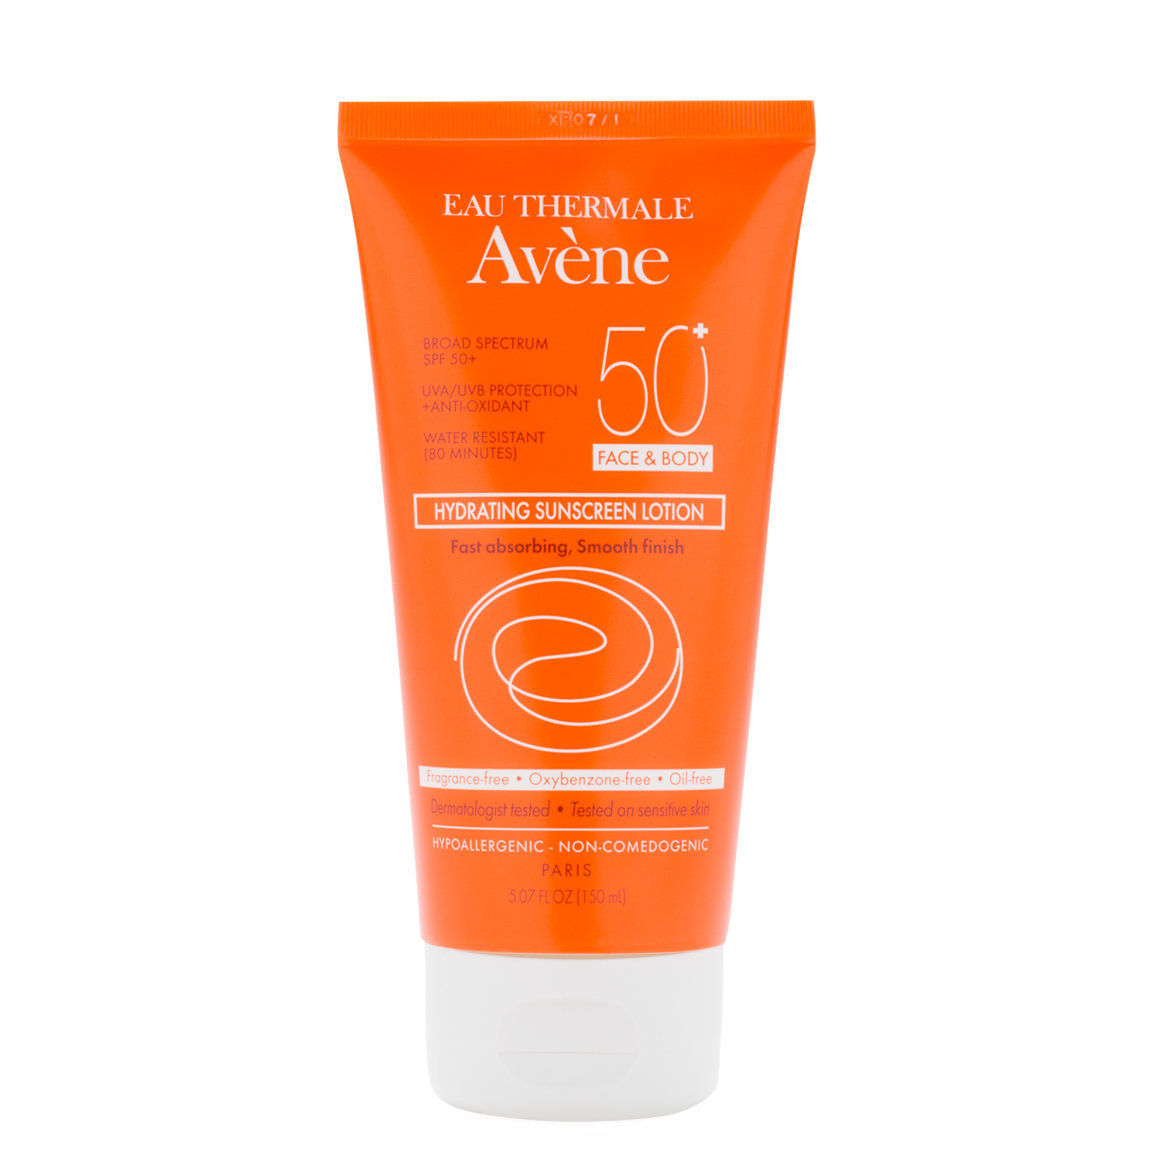 Eau Thermale Avène Hydrating Sunscreen Lotion SPF 50+ product swatch.